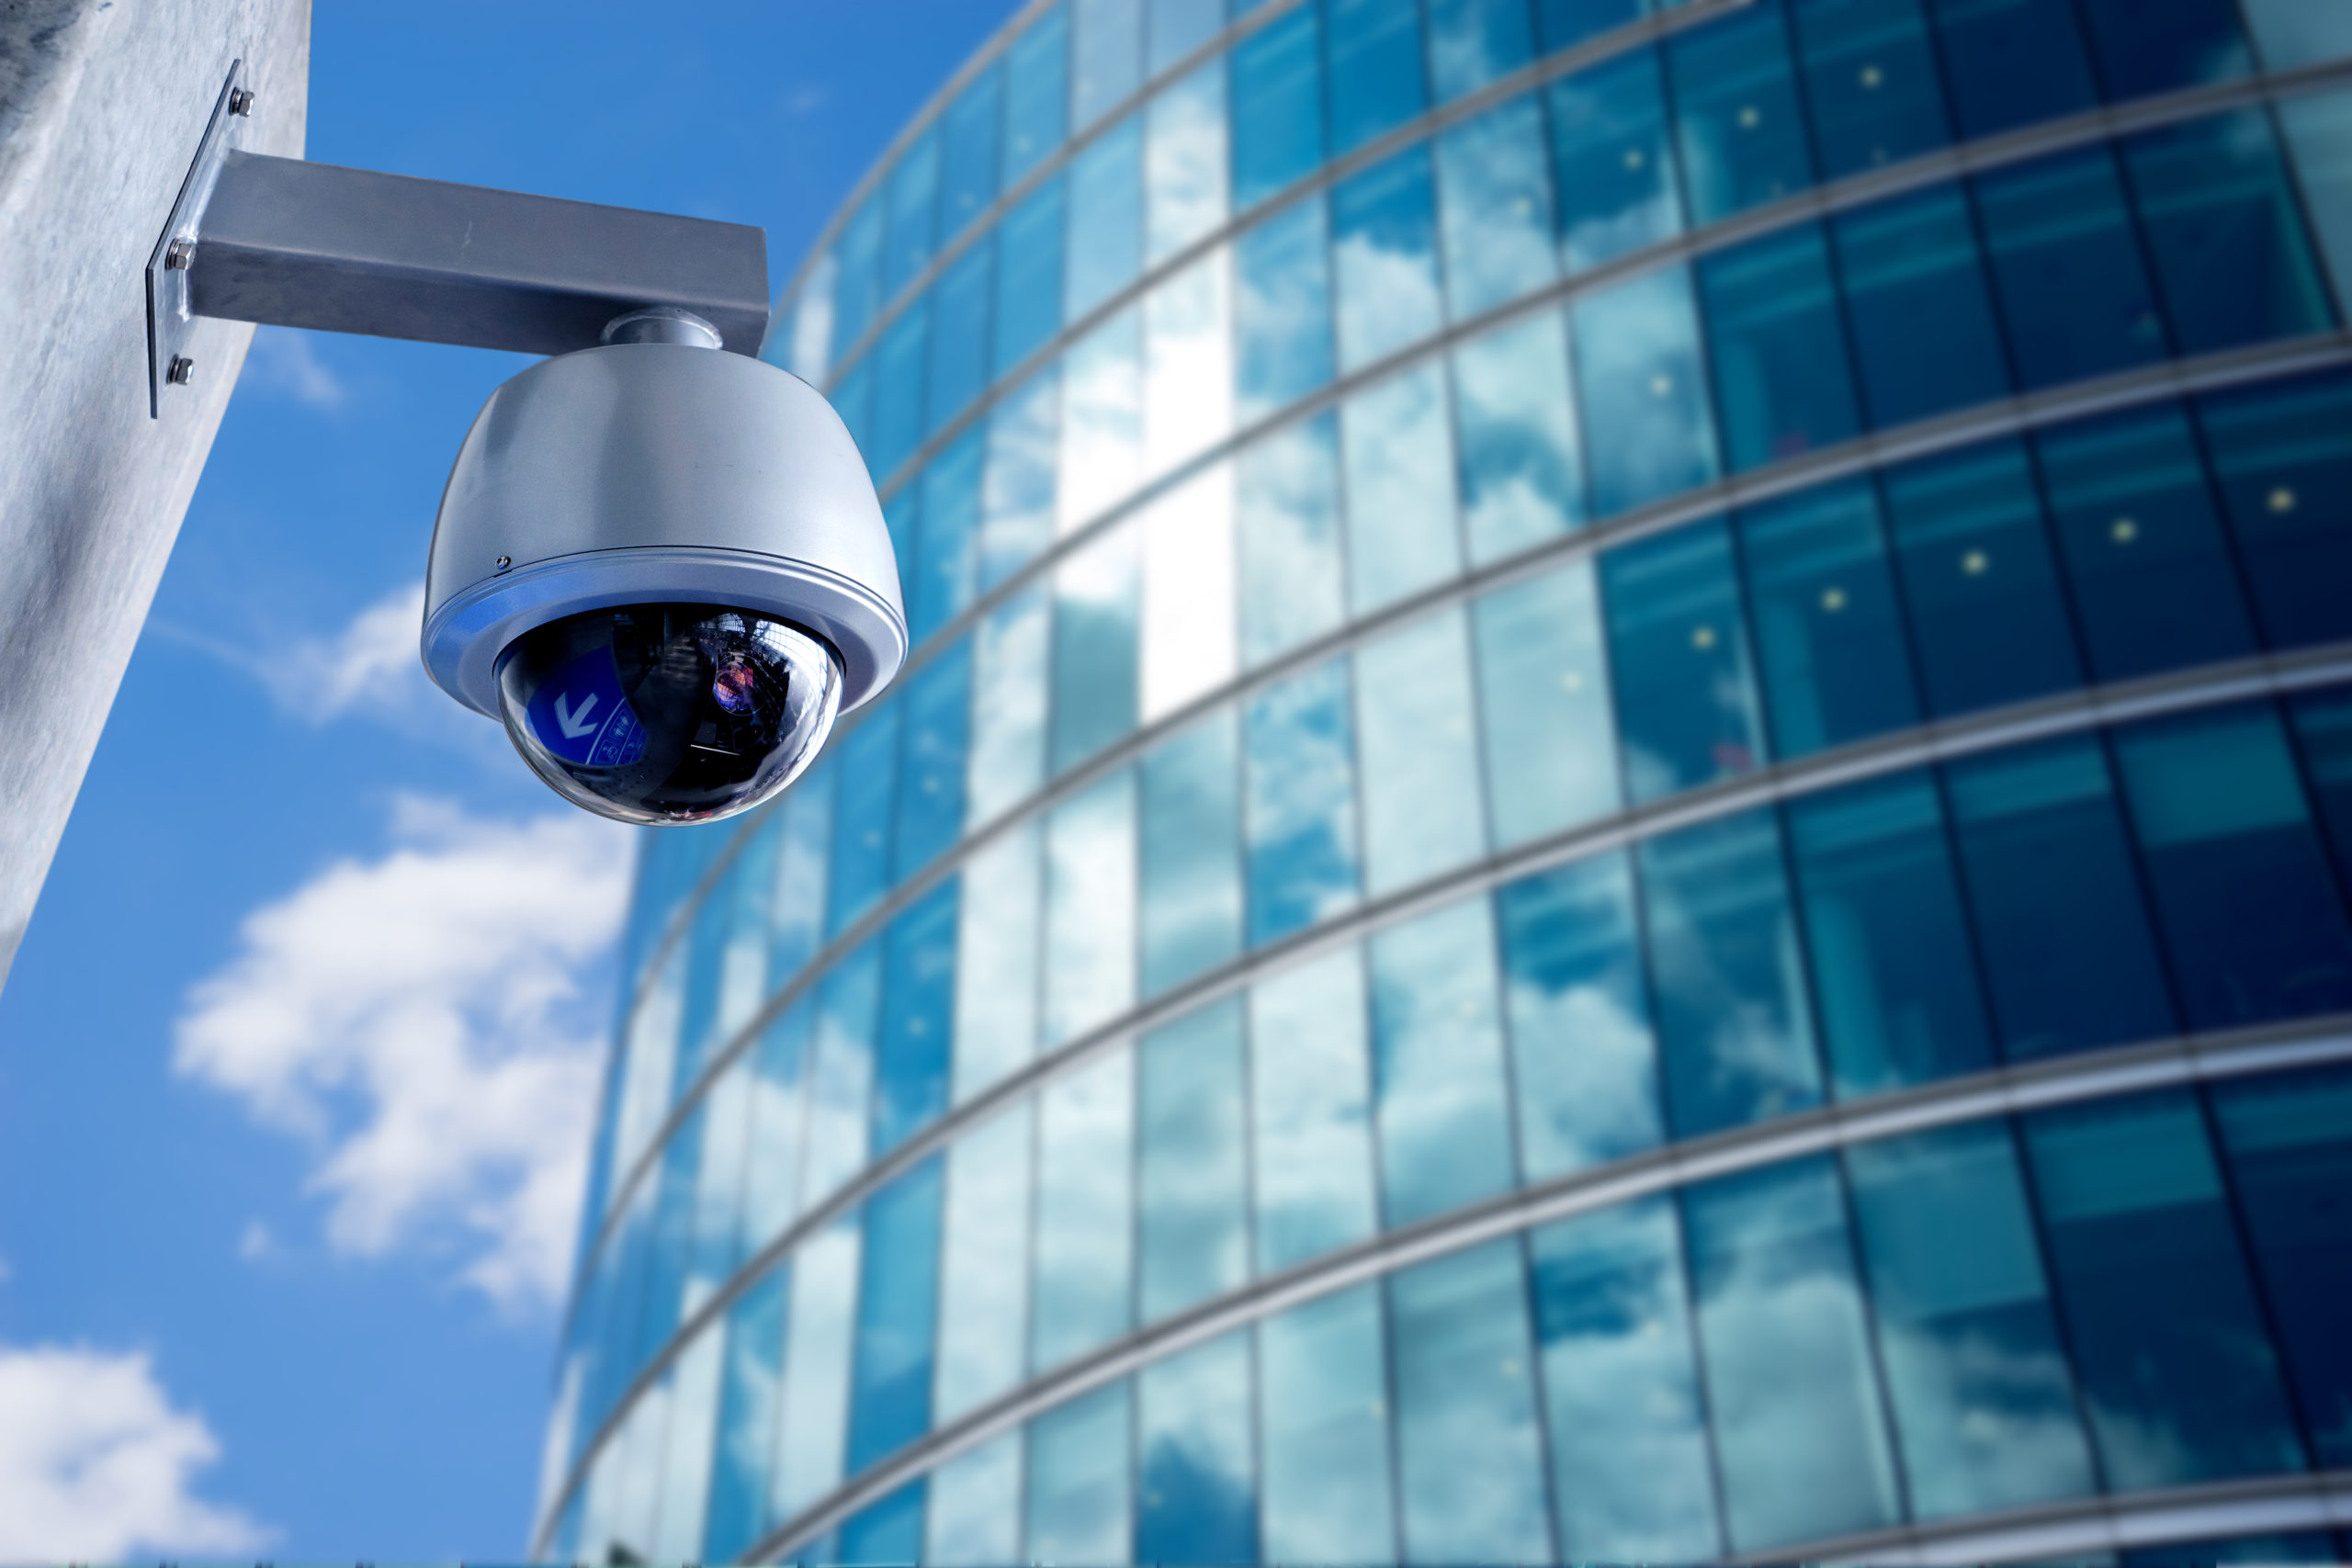 Recir - Physical security of buildings, infrastructures and resources - Motorized CCTV camera